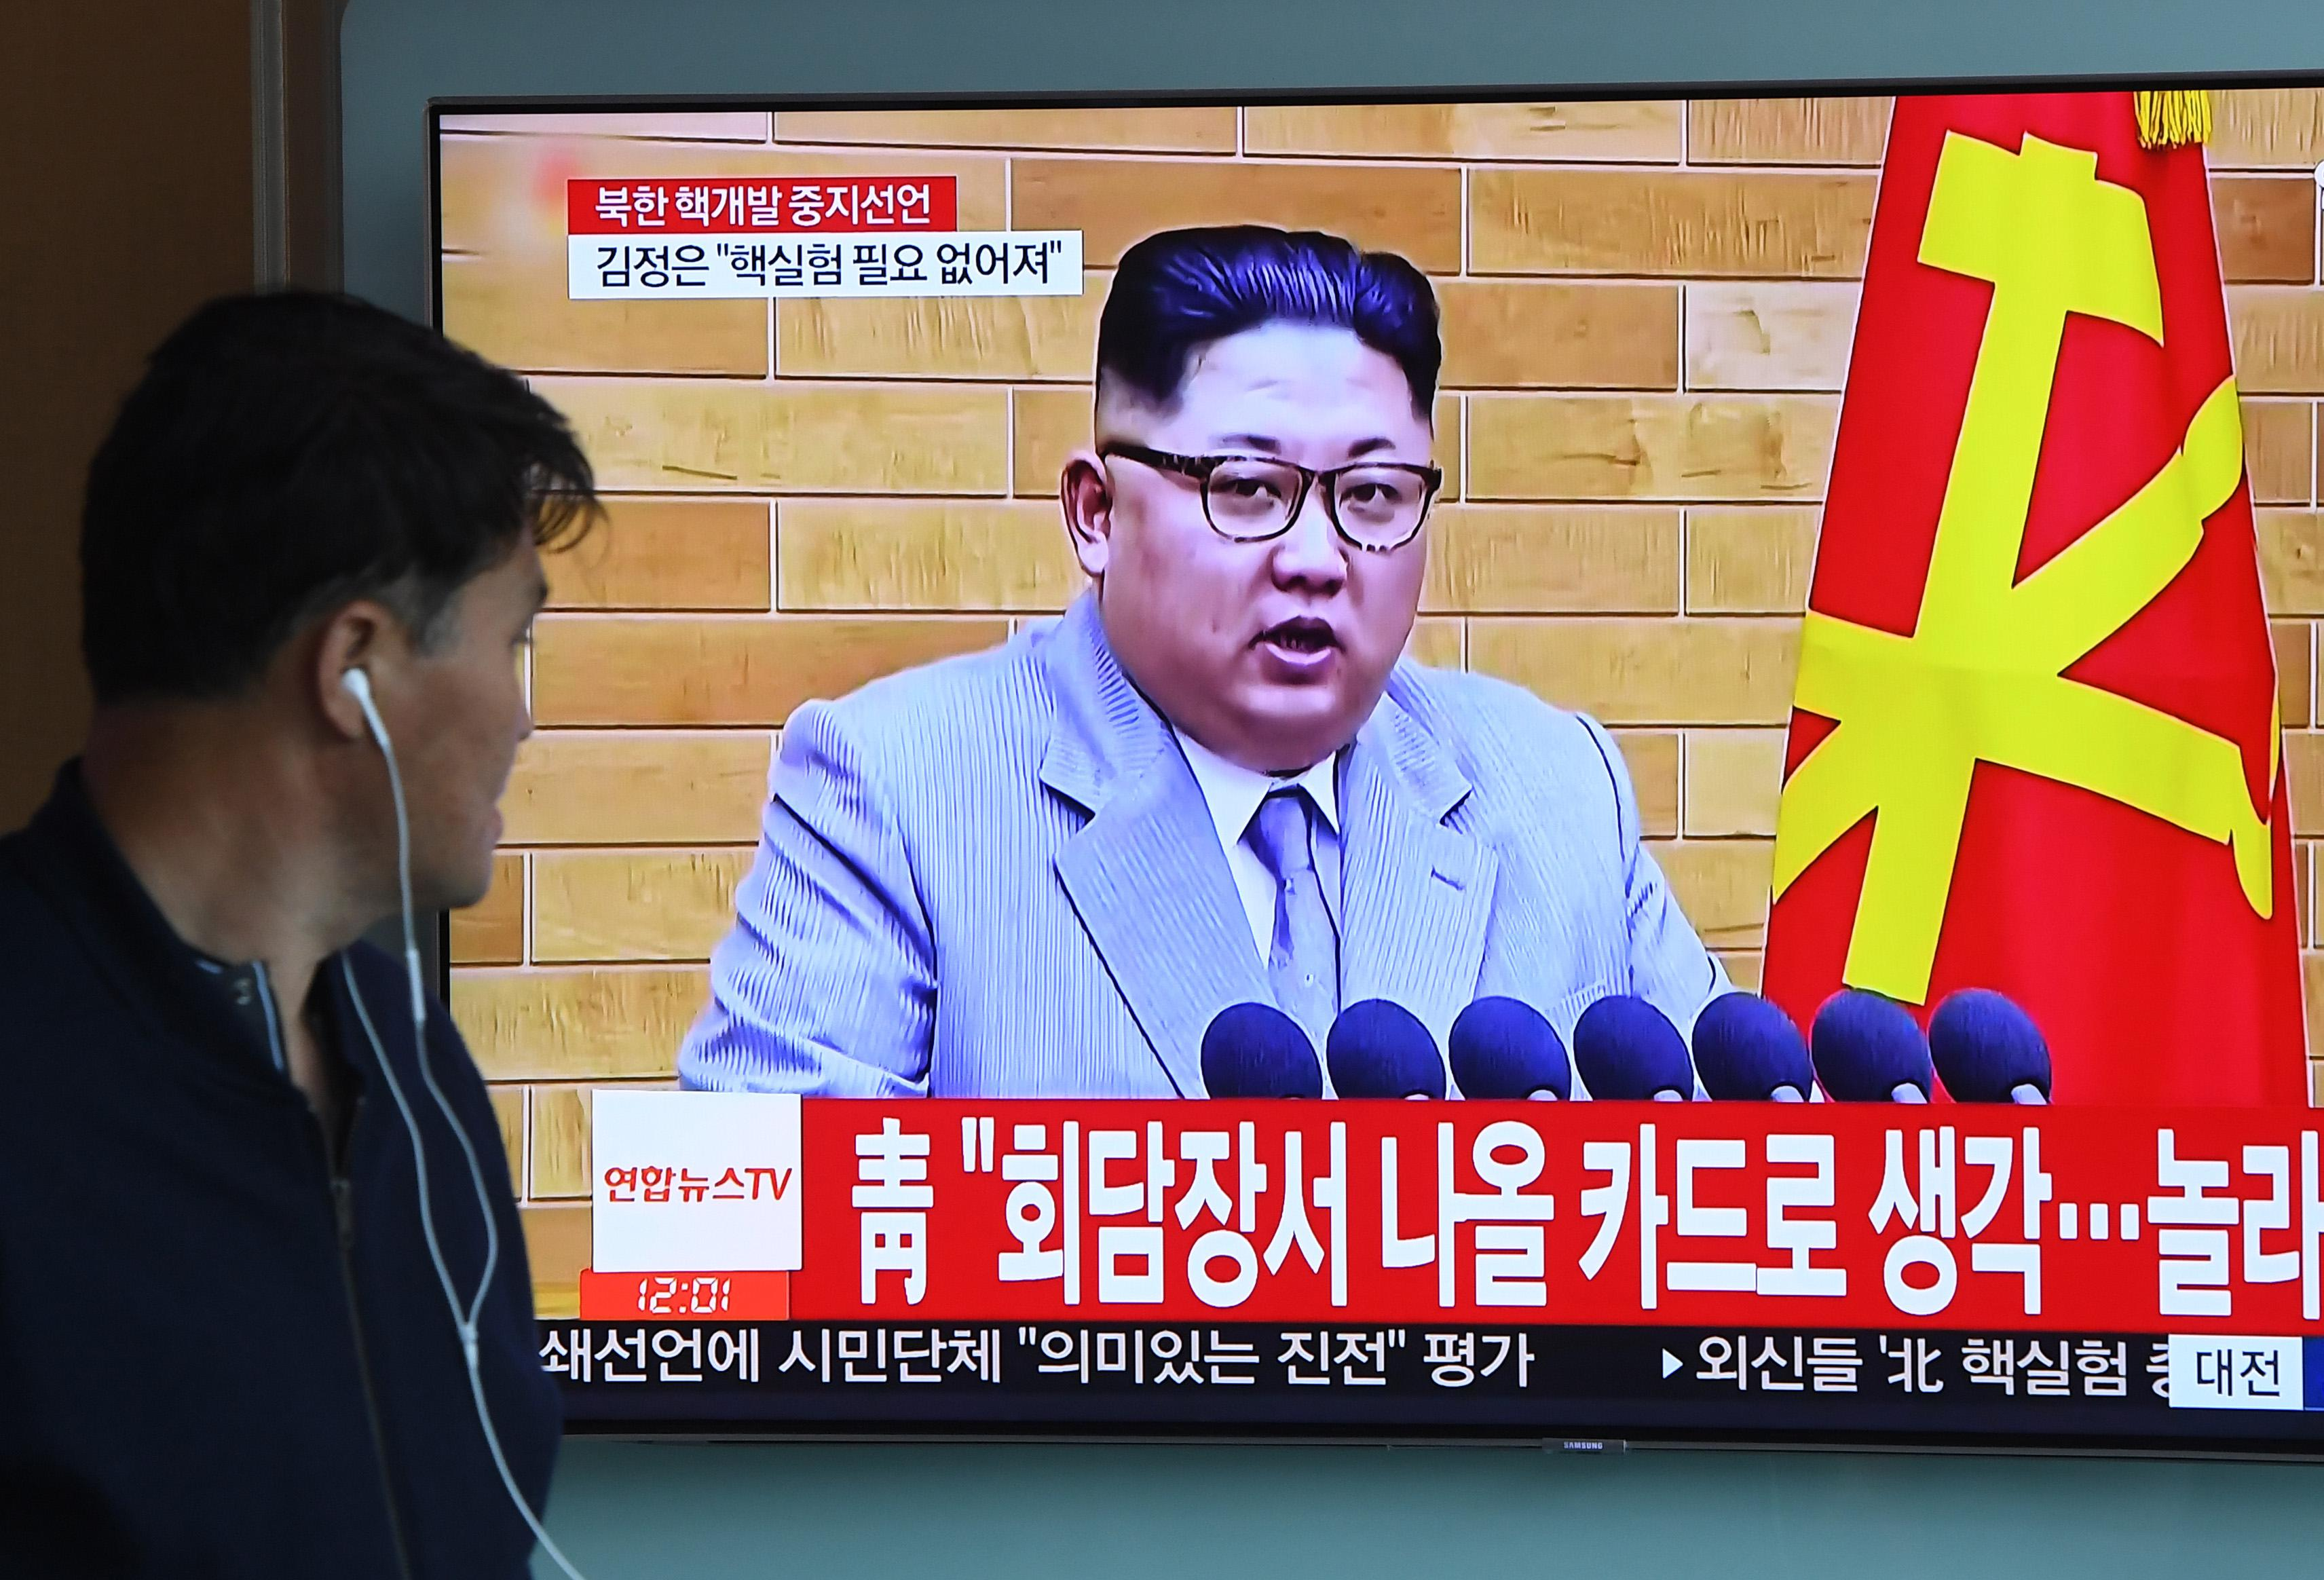 A man watches a television news showing a file footage of North Korean leader Kim Jong Un, at a railway station in Seoul on April 21, 2018.